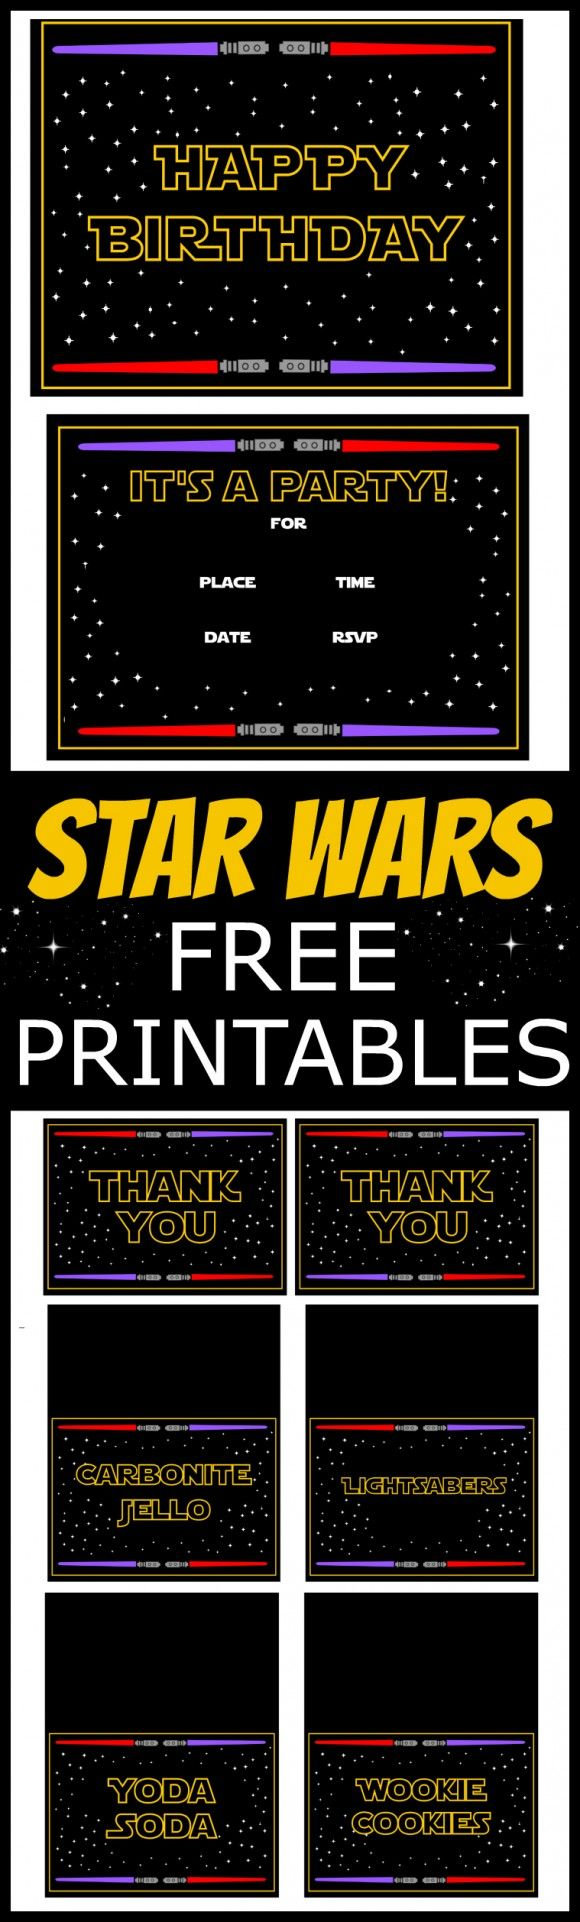 image about Star Wars Birthday Invitations Printable identify 21 Star Wars Birthday Occasion Options Awaken your Tension